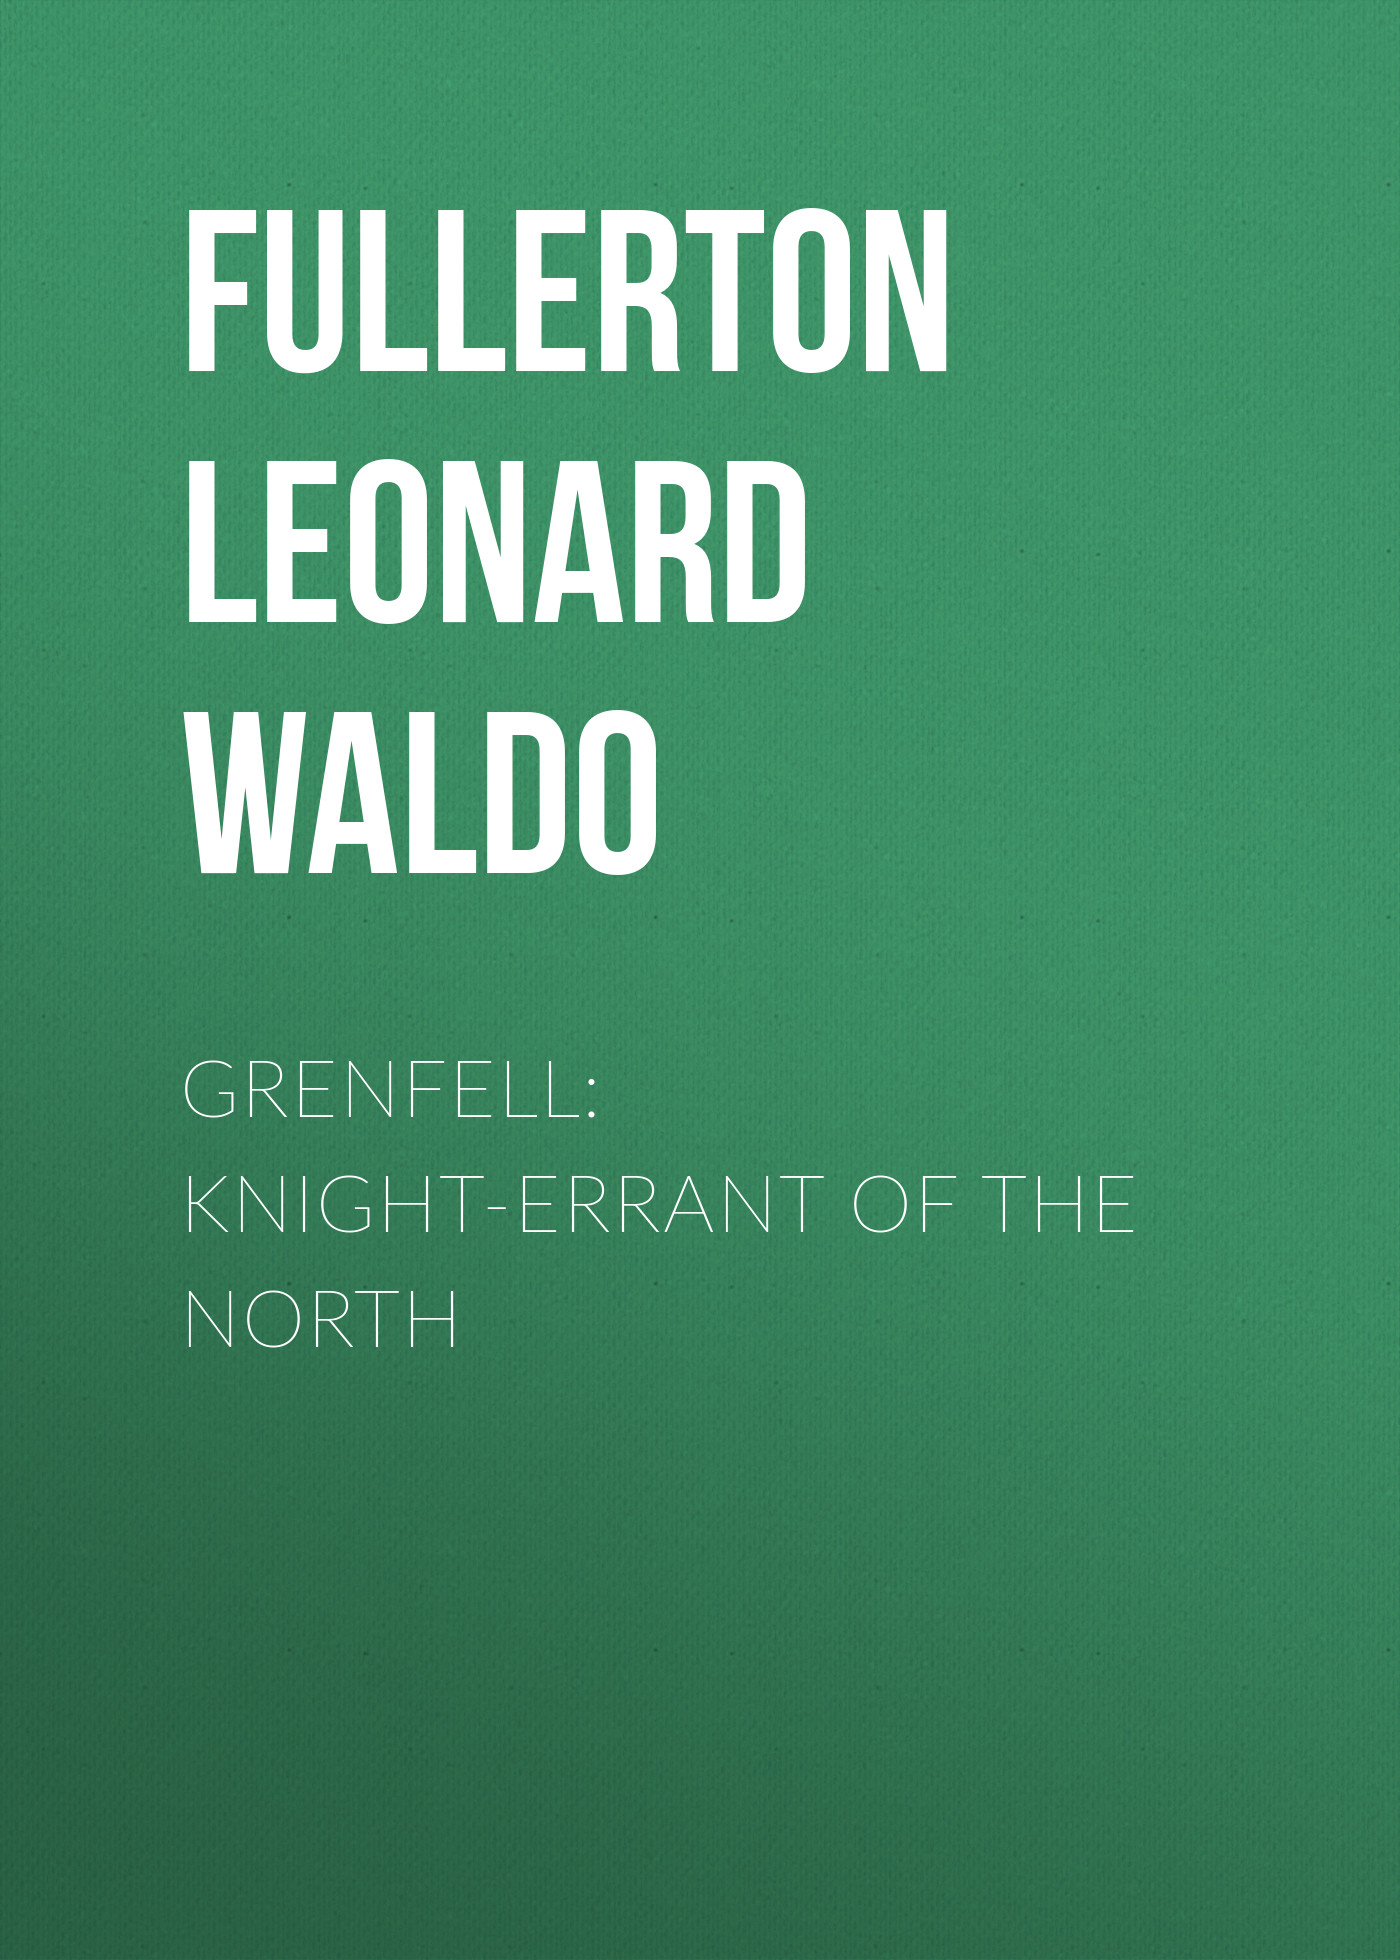 Fullerton Leonard Waldo Grenfell: Knight-Errant of the North fullerton j pocketful of dreams isbn 9781786491381